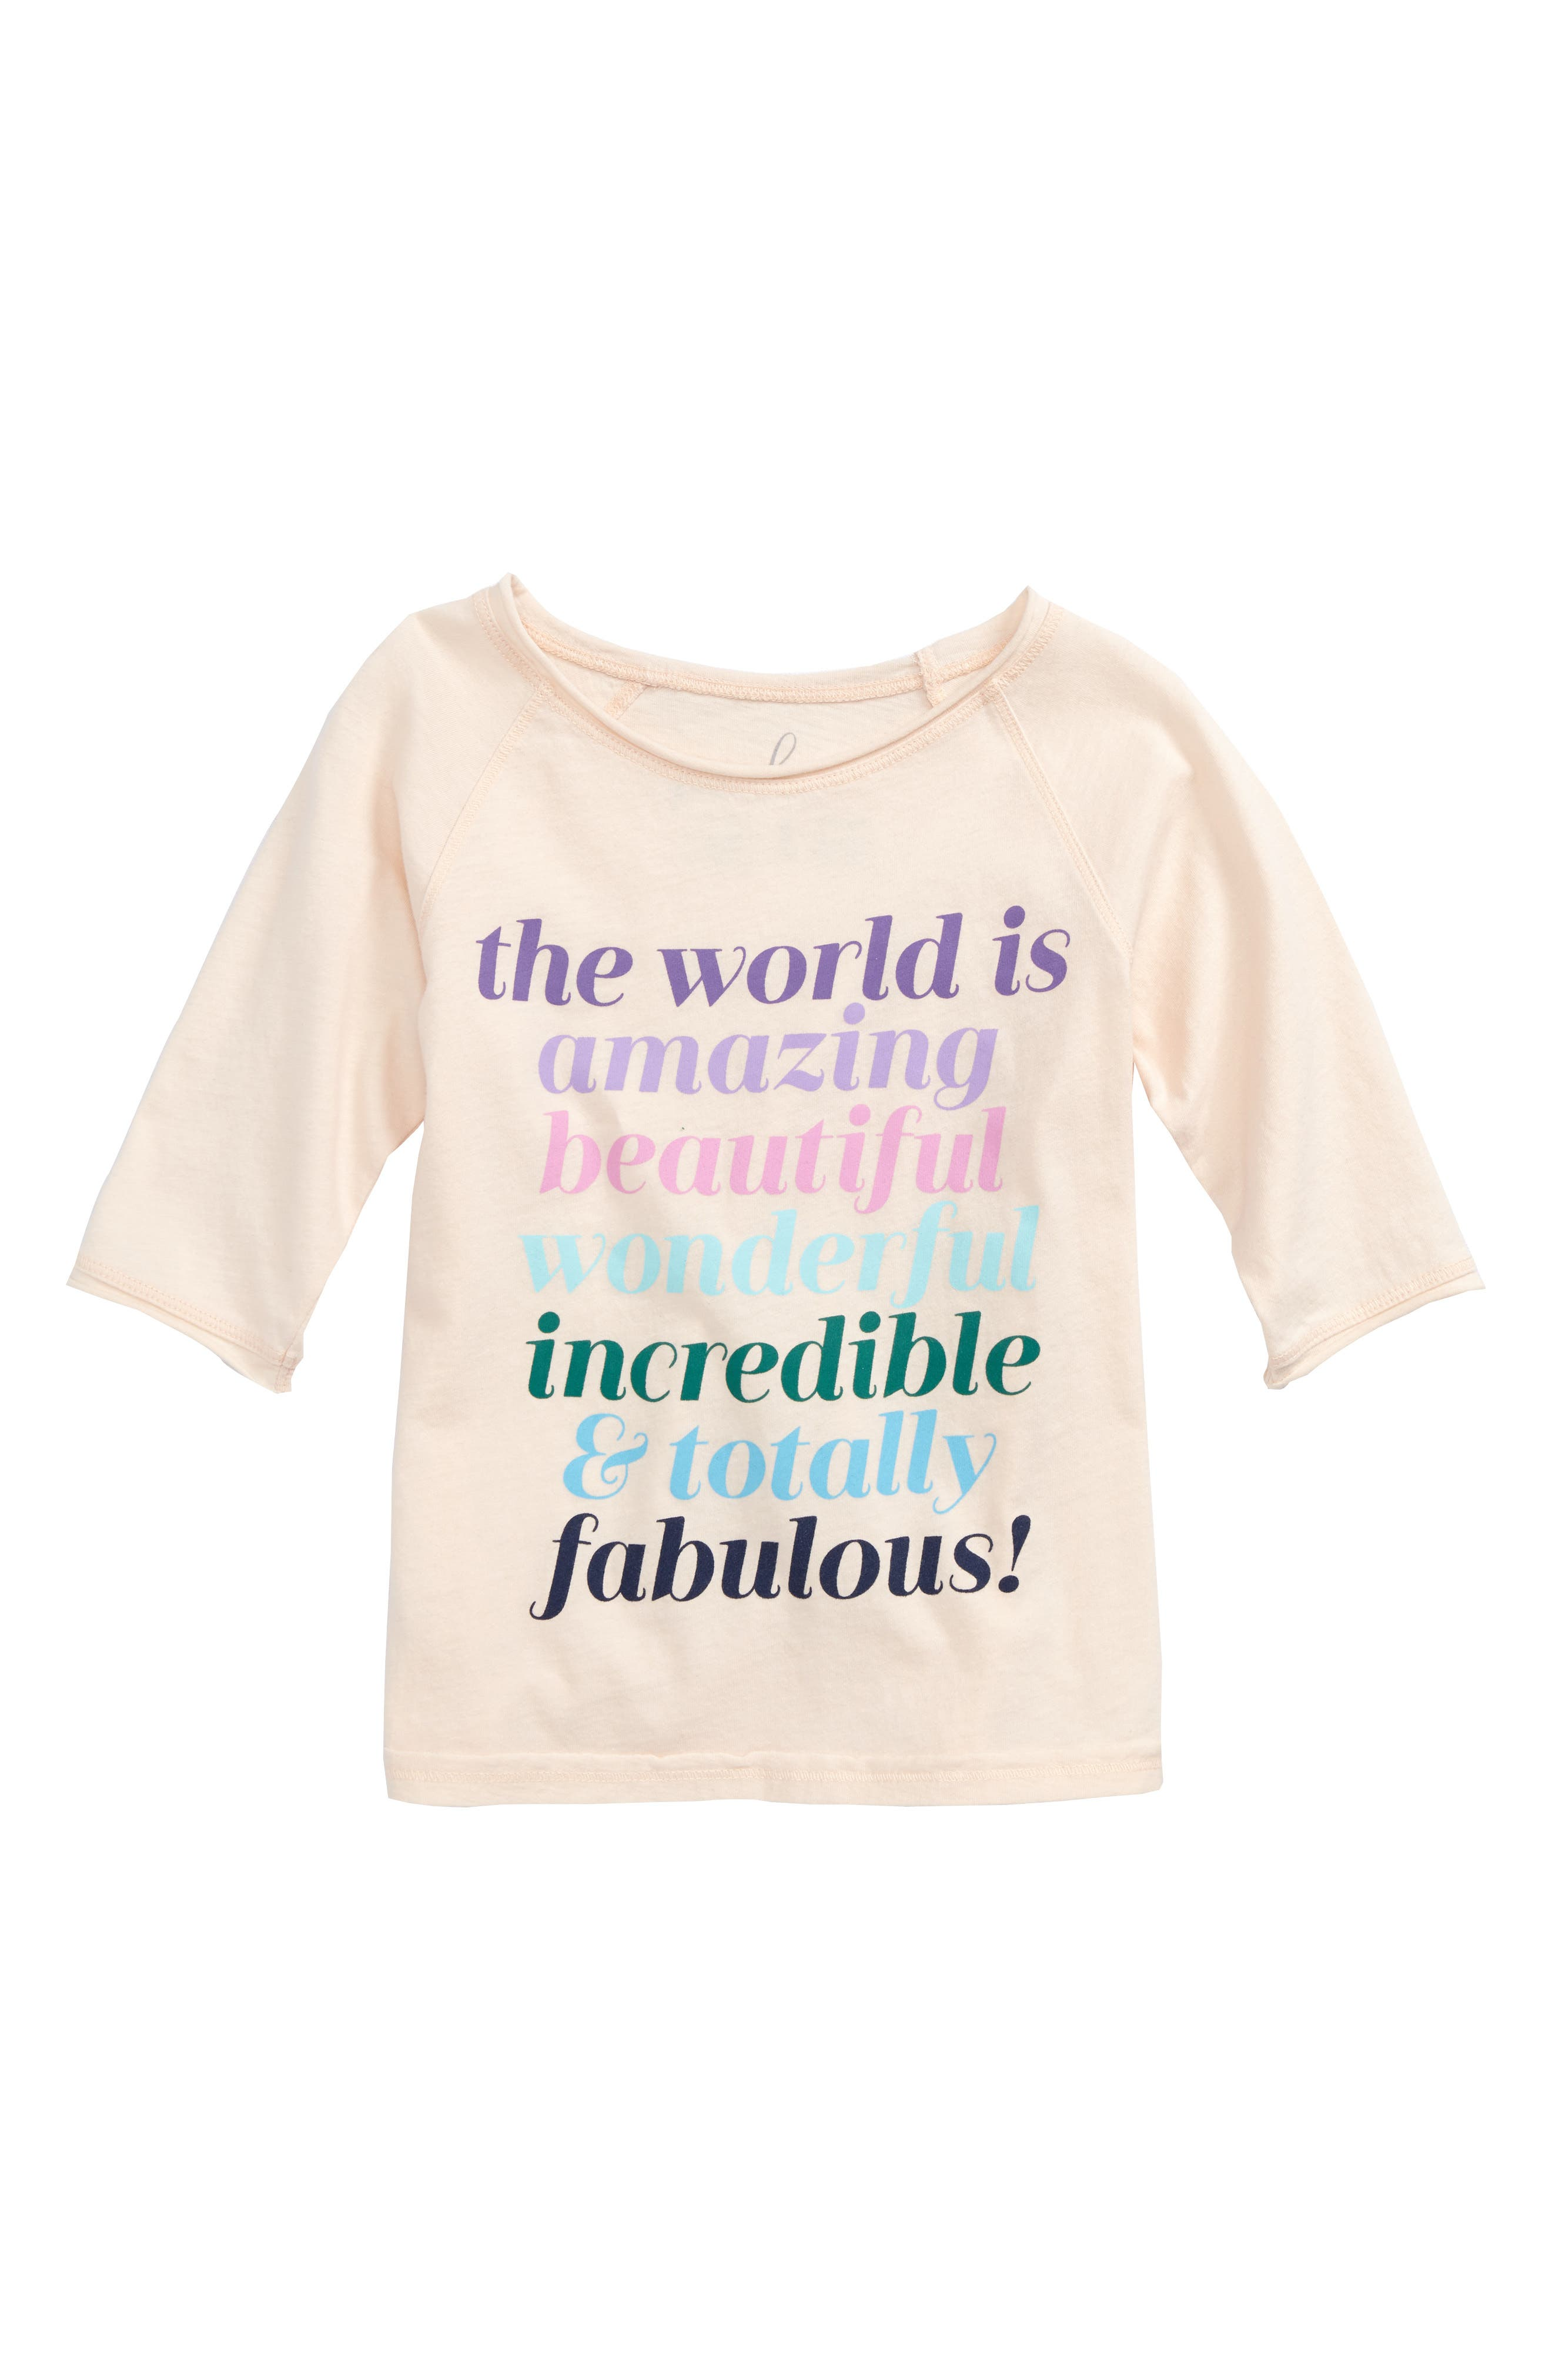 World is Amazing Graphic Tee,                             Main thumbnail 1, color,                             Cream